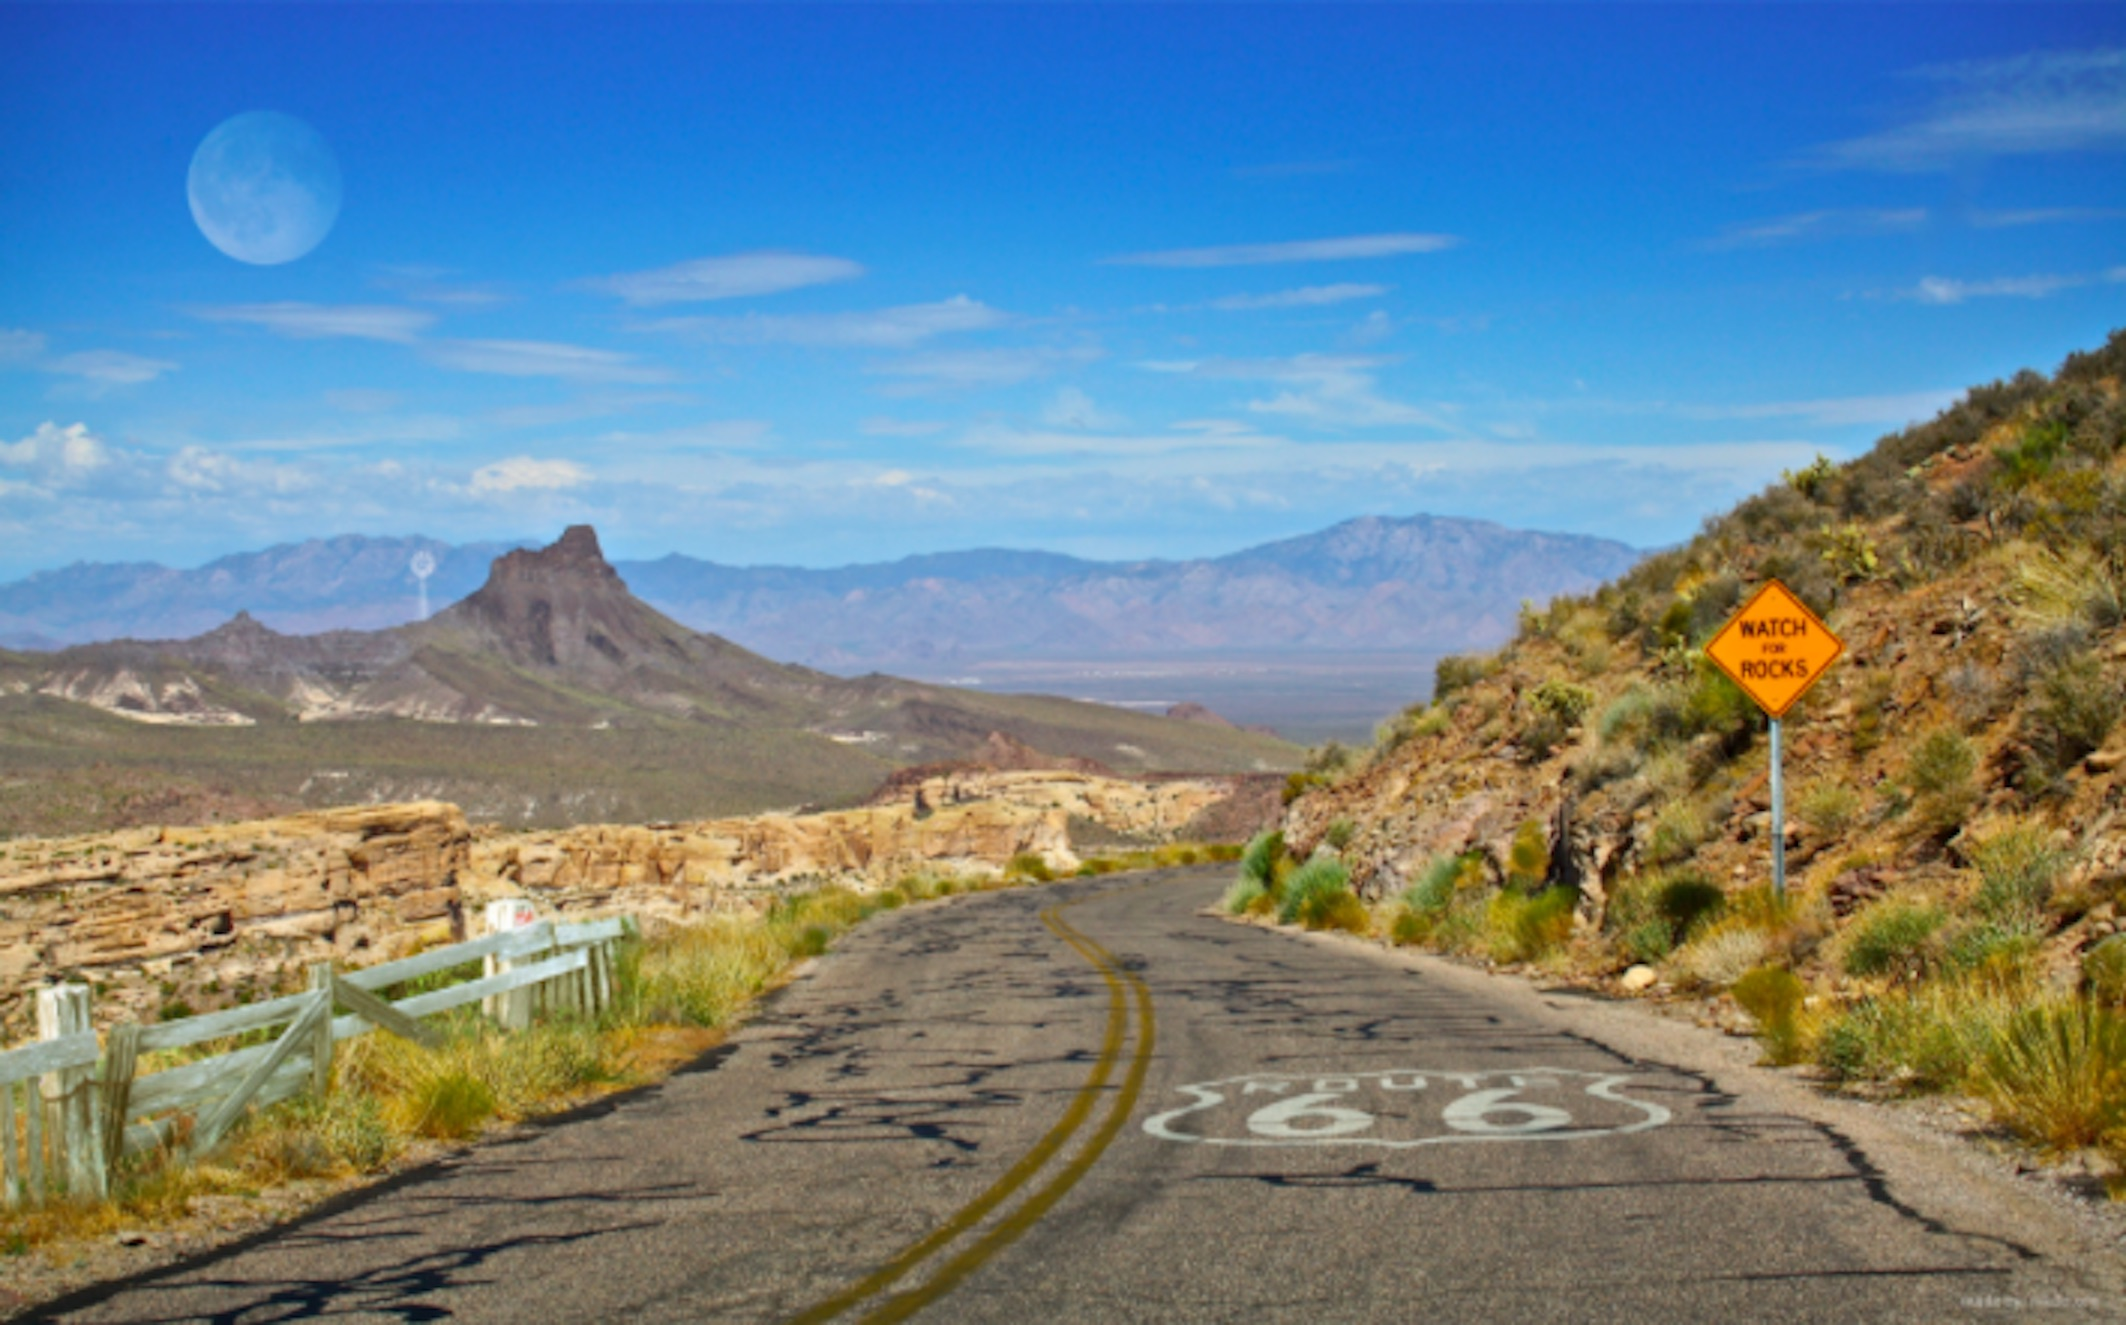 Best Road Trips In The USA - Road trip route 66 usa